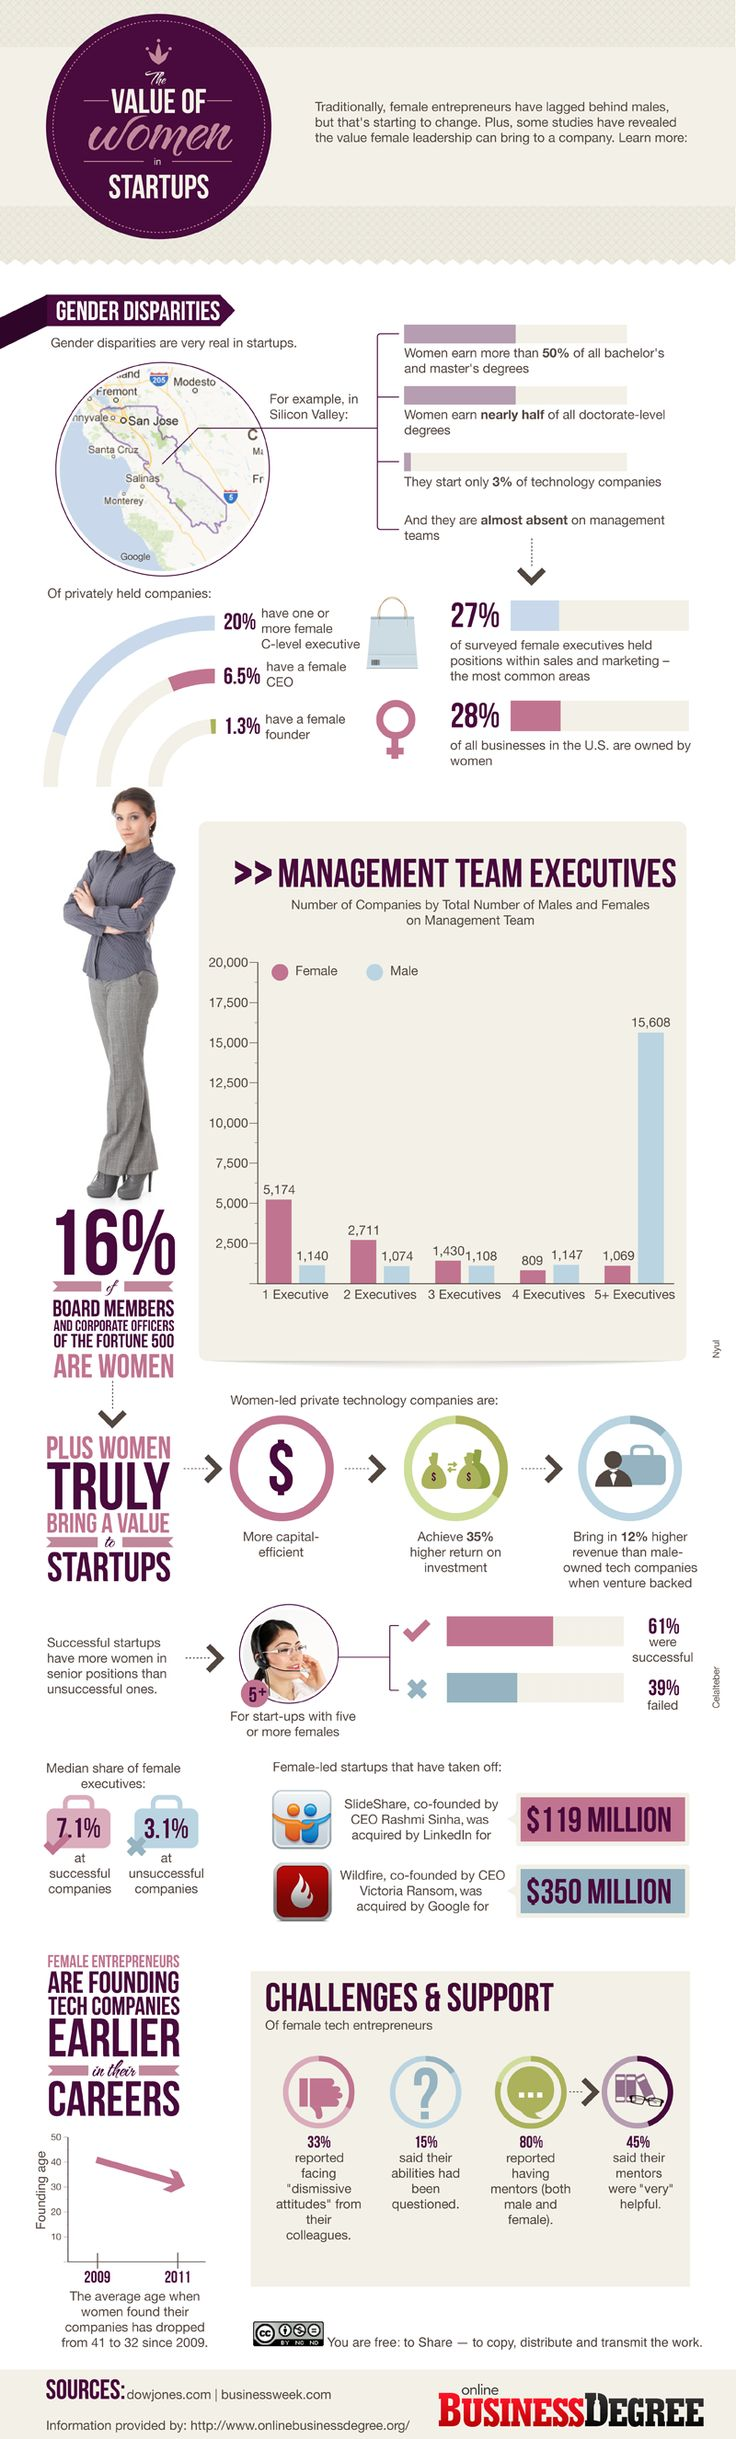 Women Startup Trends and Statistics